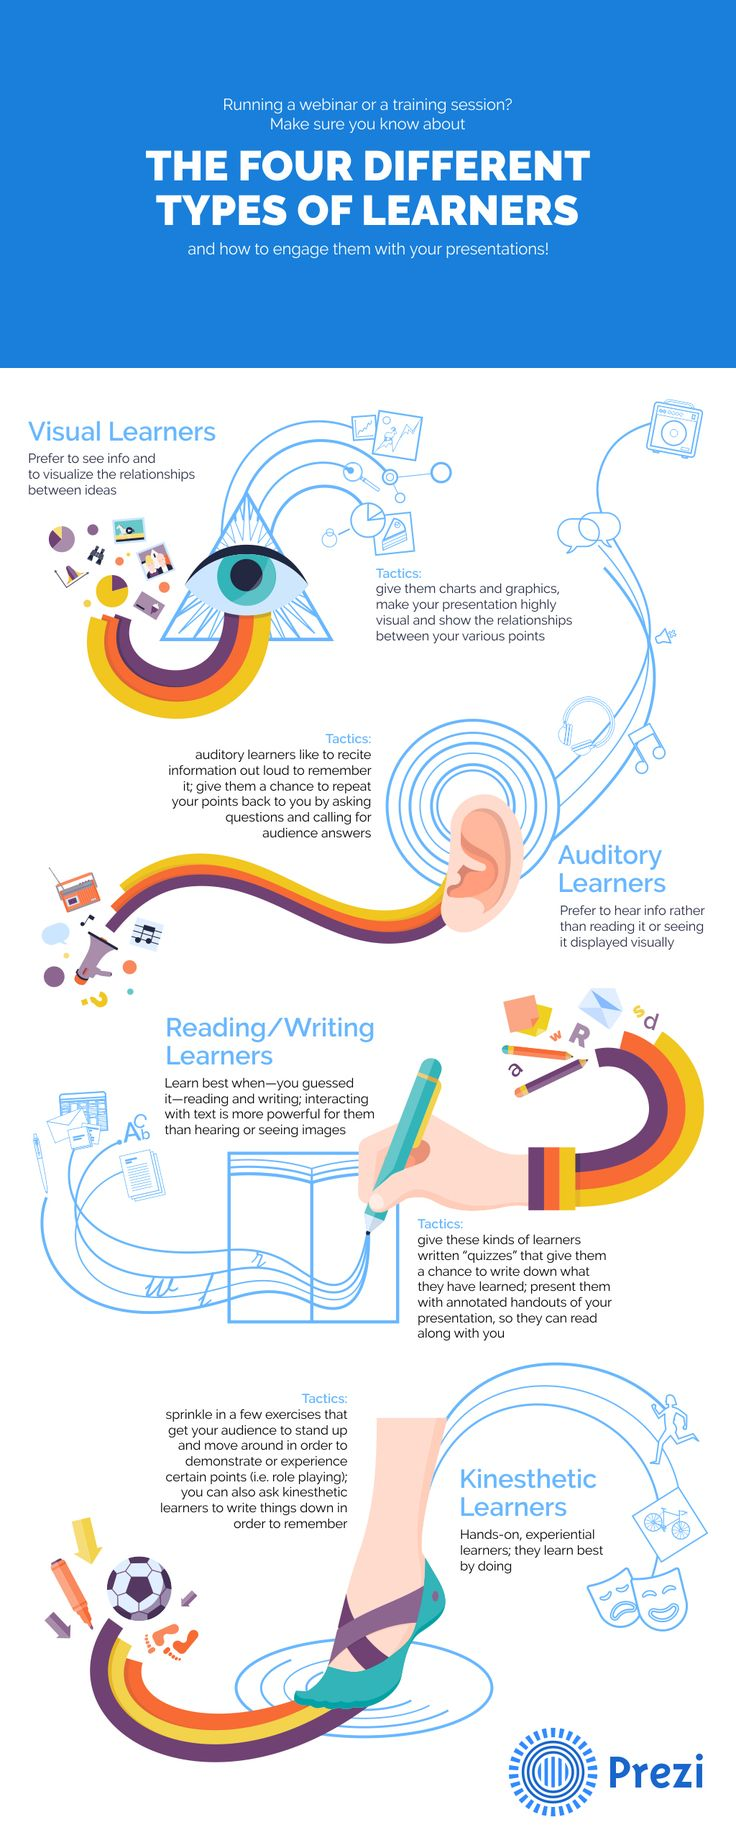 11 Best Science Experiments Images By Adilene Barron On Pinterest Draw A Freebody Diagram For Goldfish Physics The Four Types Of Learners And What They Mean To Your Presentations Business Spectator